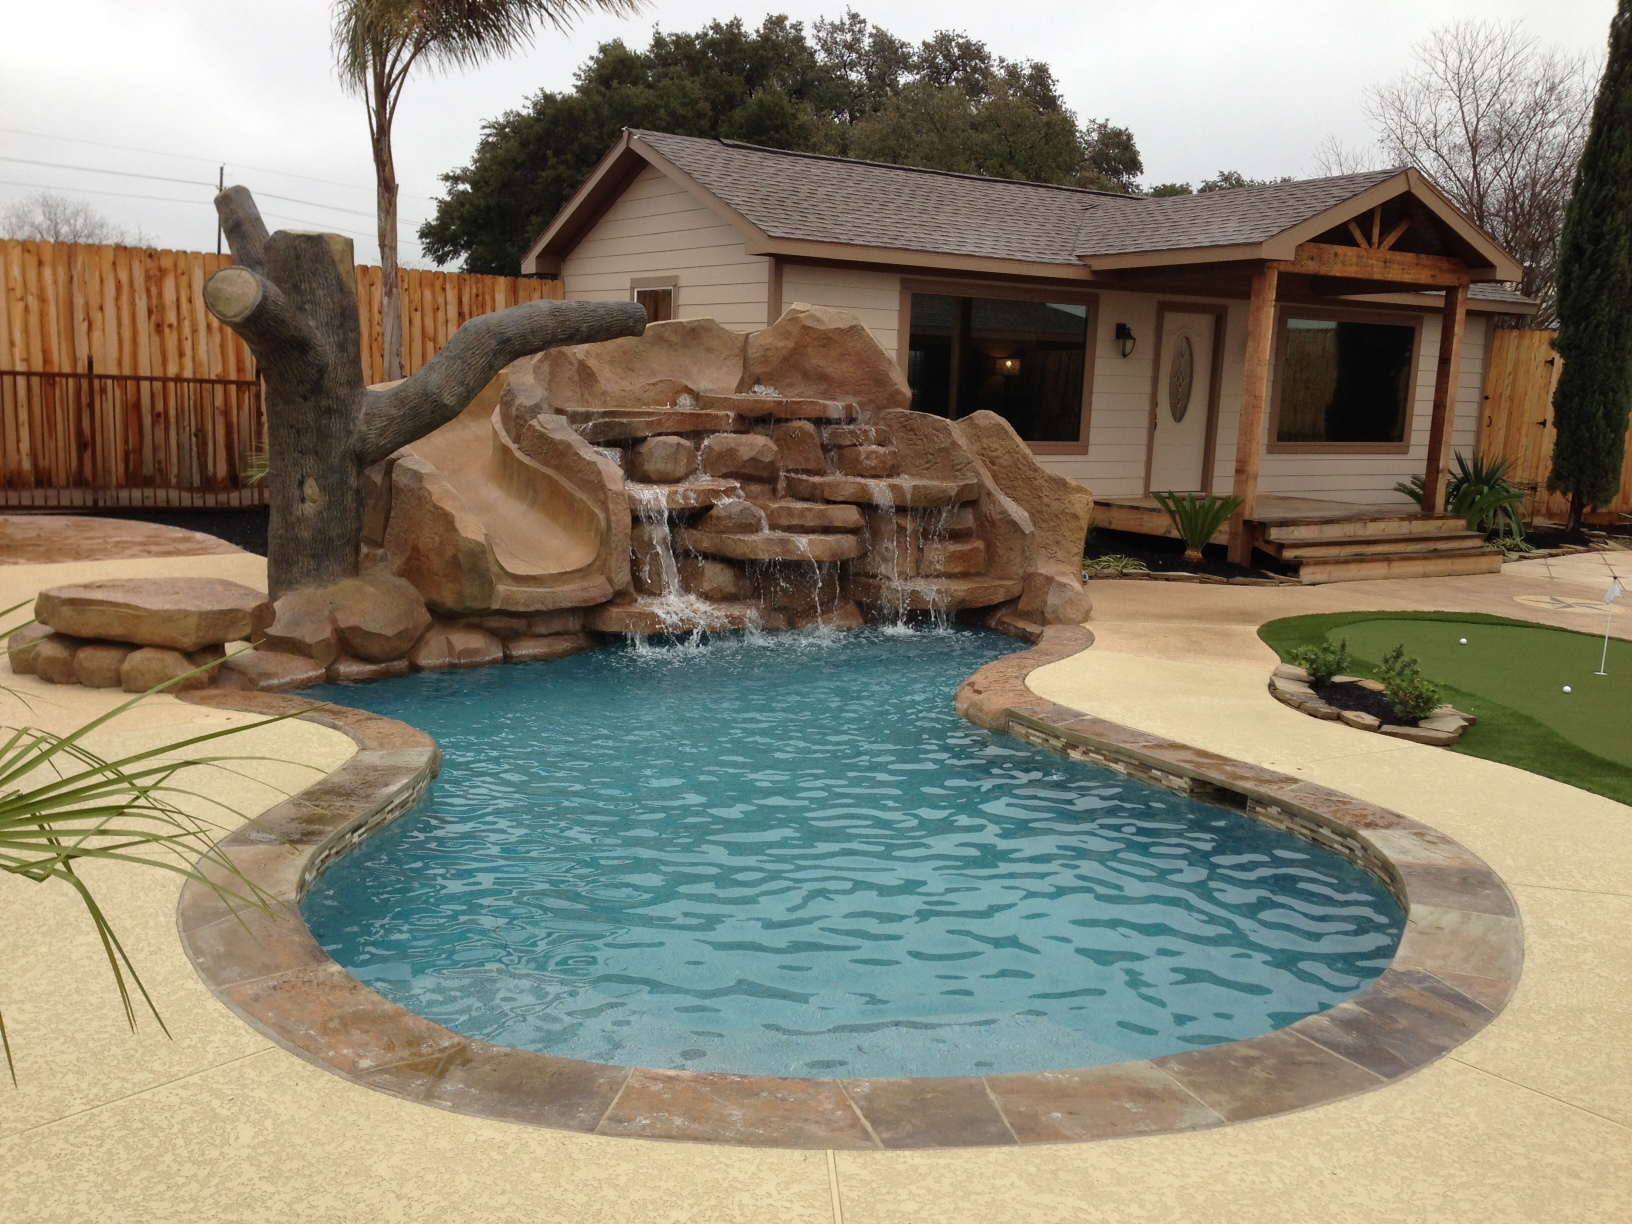 average cost of inground swimming pool pictures of inground pools backyard pool designs - In Ground Pool Design Ideas